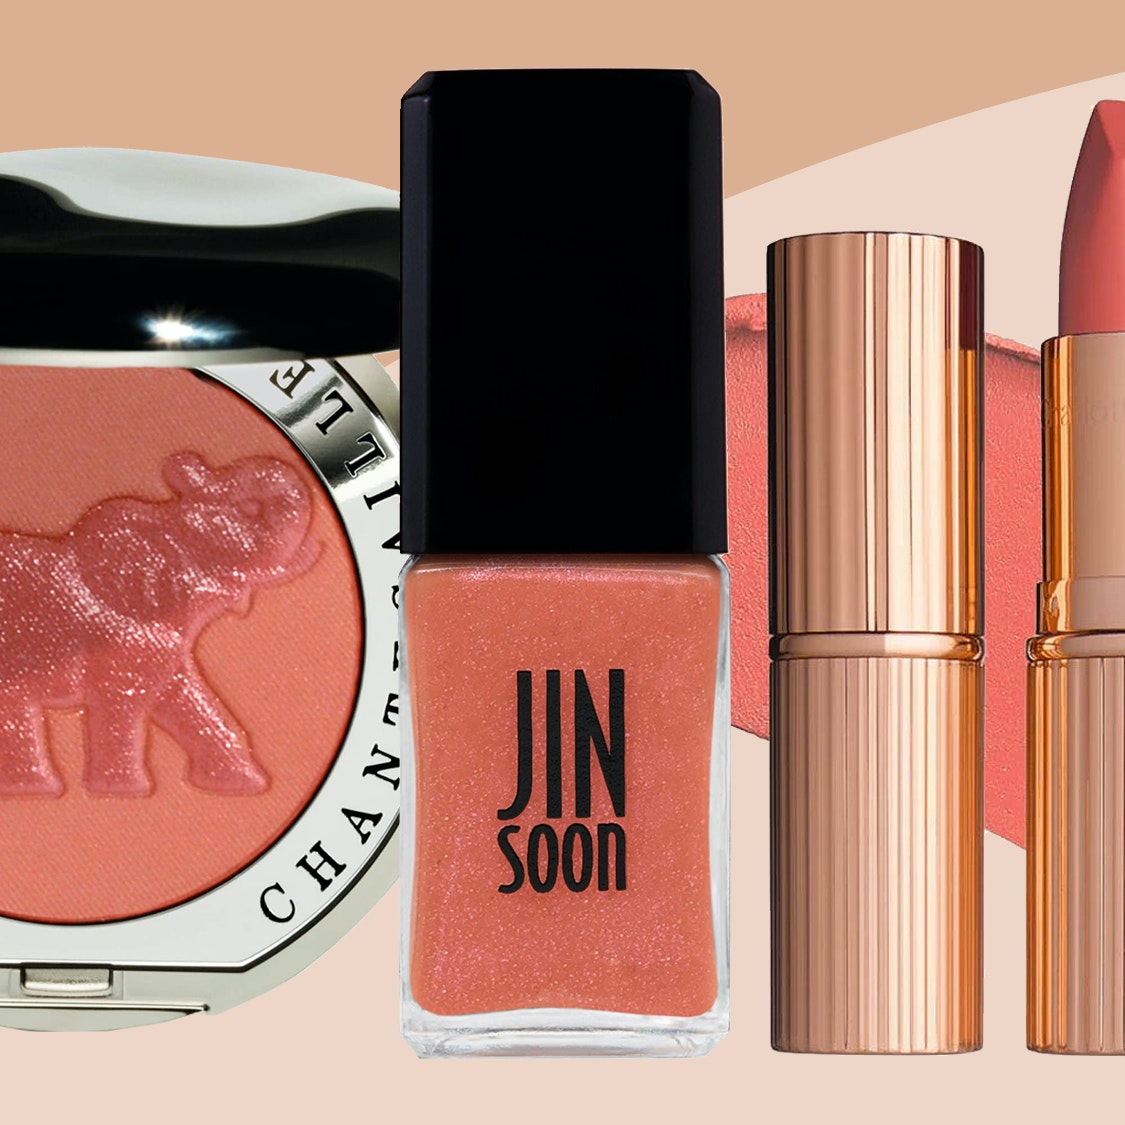 8 Beauty Products That Make It Easy to Wear Living Coral, Pantone's 2019 Color of the Year